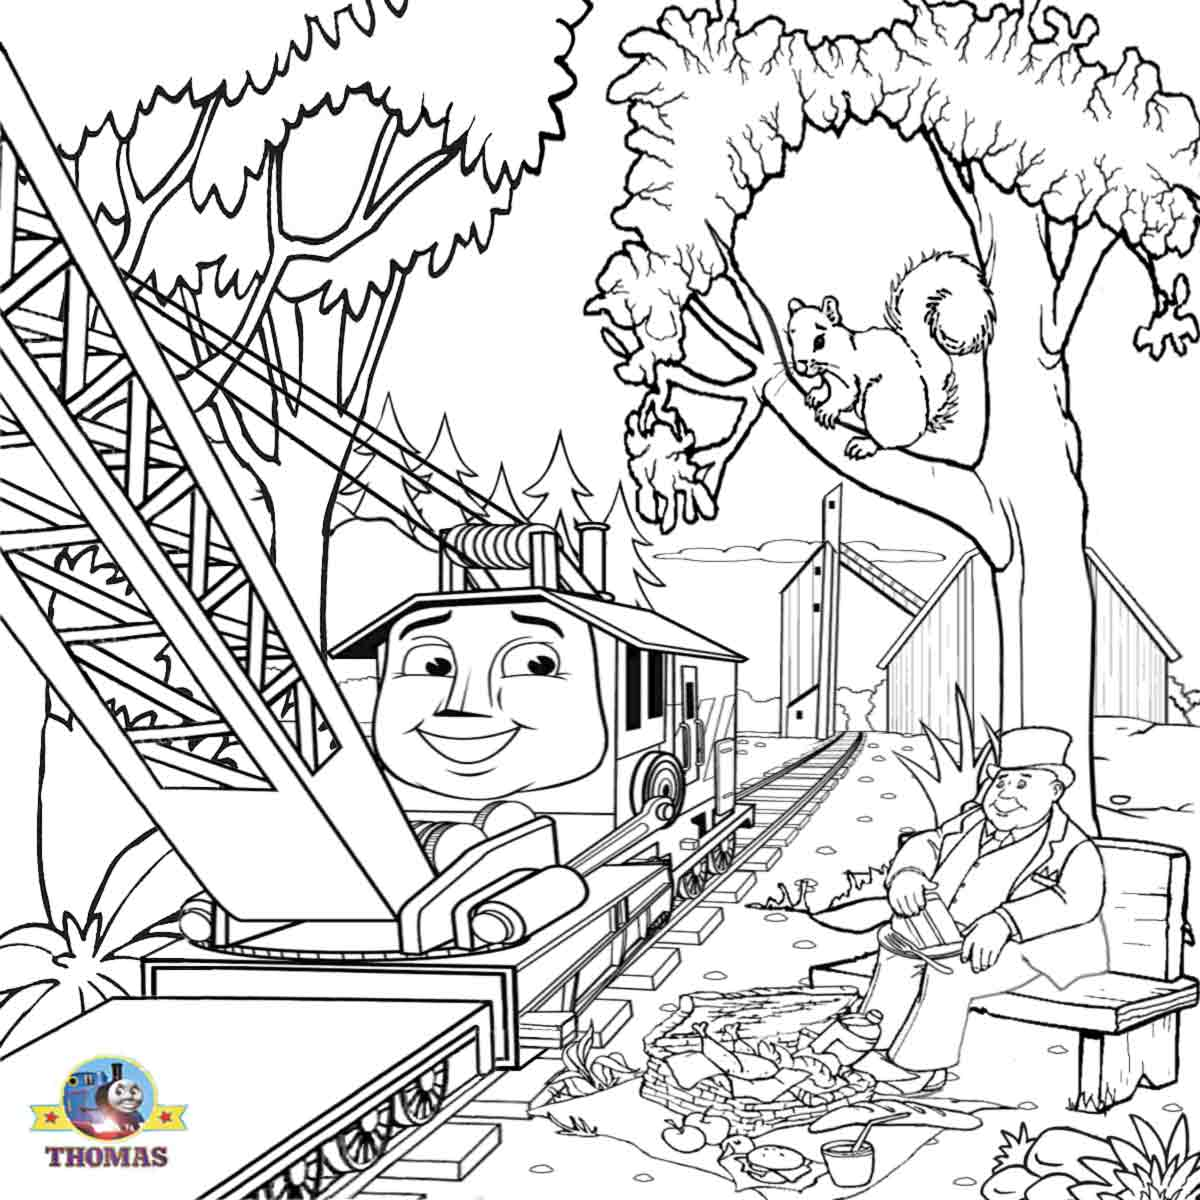 Free coloring pages printable pictures to color kids for Printable thomas the train coloring pages